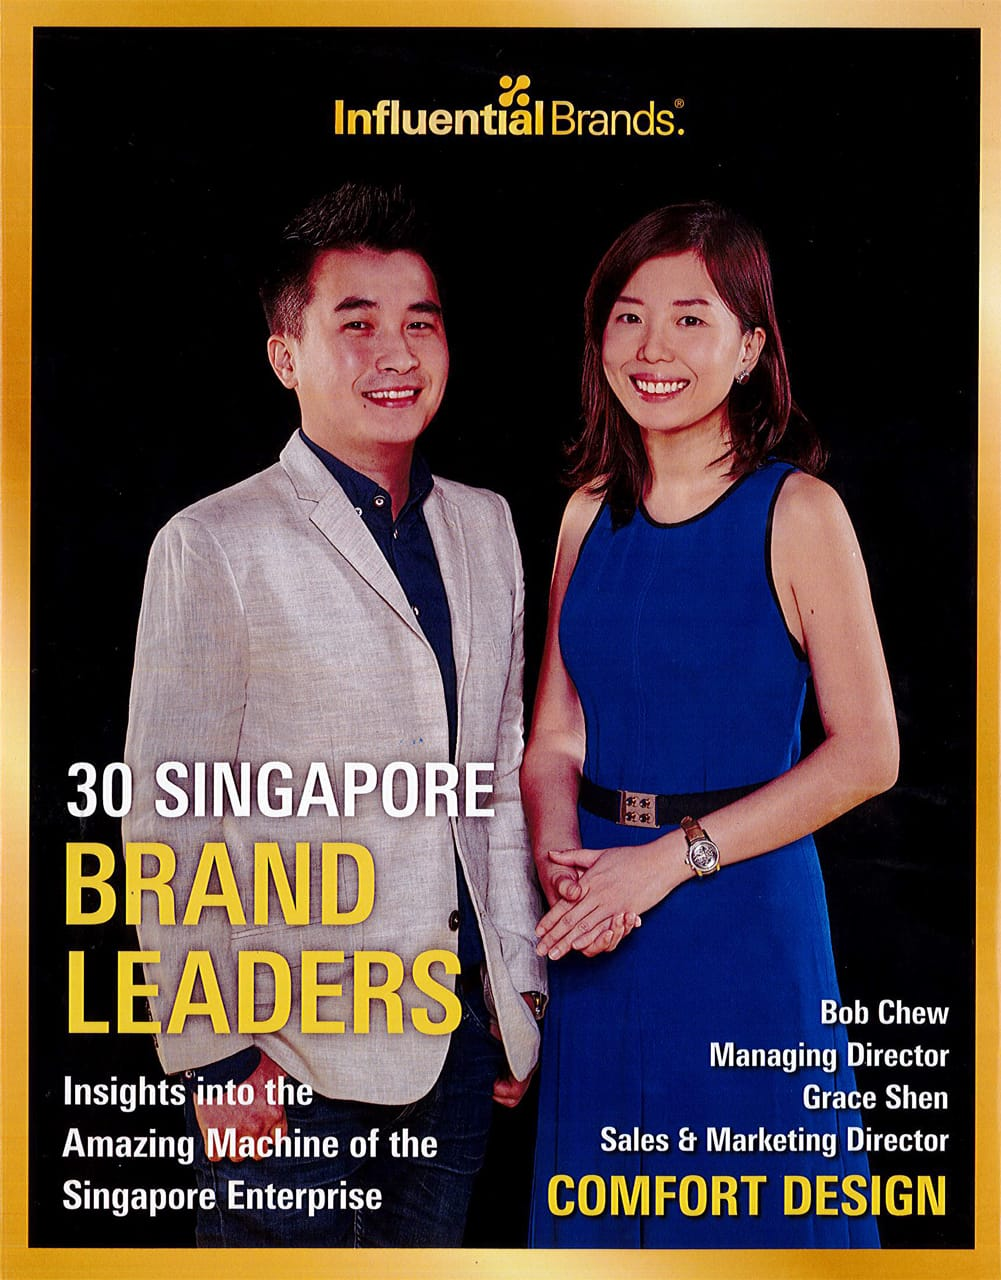 Influential Brands' book - 30 Singapore Brand Leaders